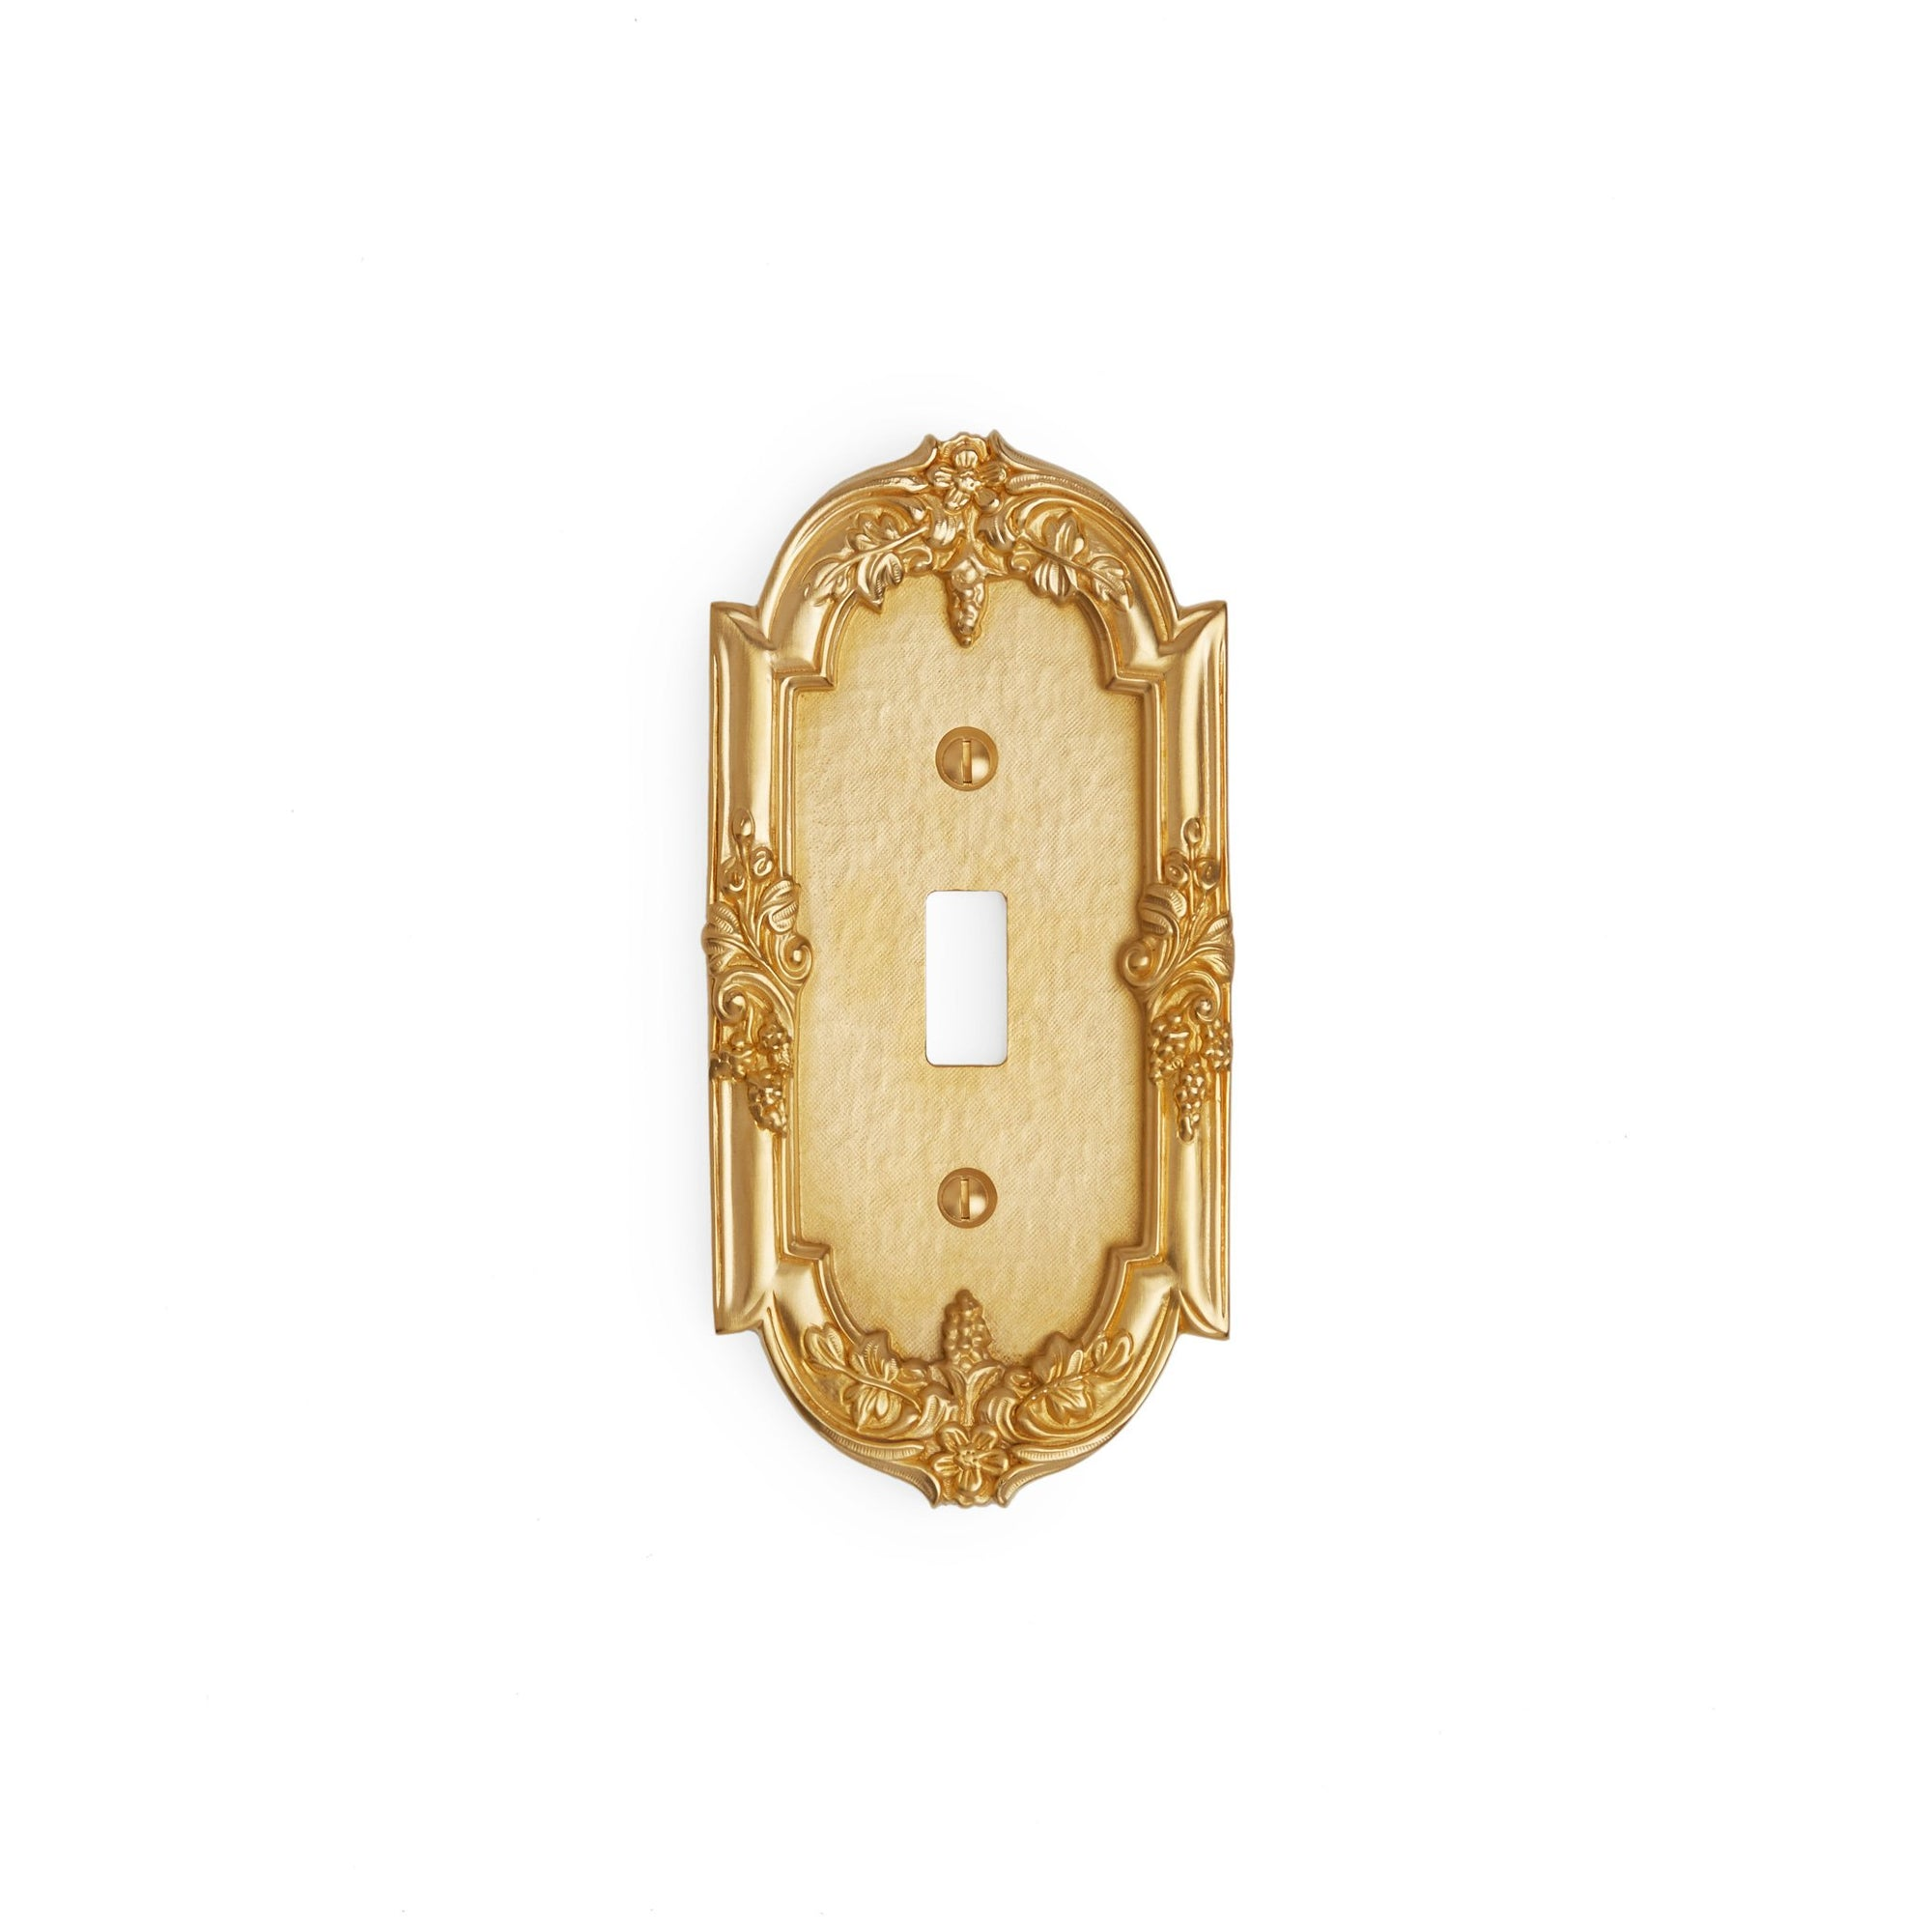 0458-SWT-GP Sherle Wagner International Grapes Single Switch Plate in Gold Plate metal finish